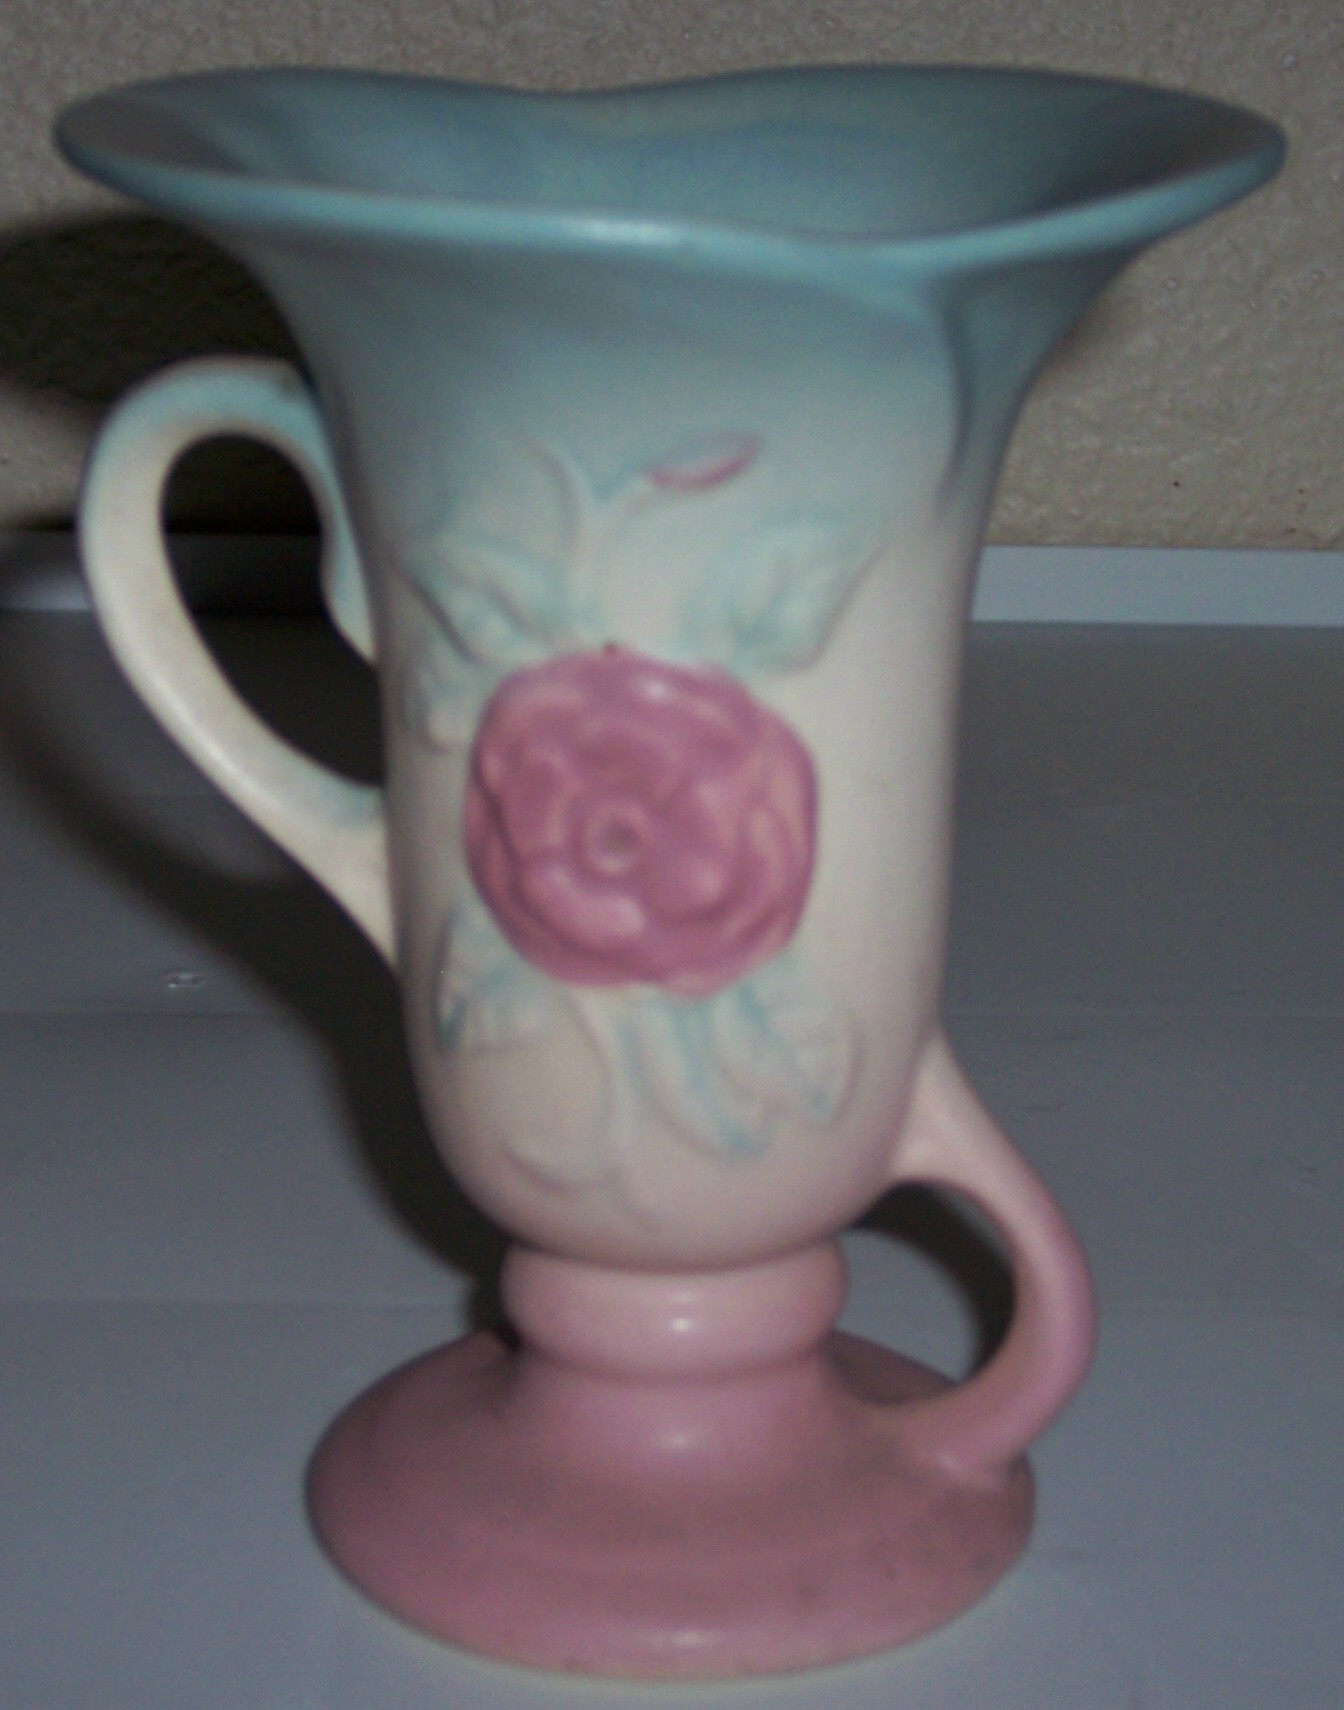 Hull pottery open rose 127 handled vase american art pottery hull pottery open rose 127 handled vase american art pottery at the pottery peddler reviewsmspy